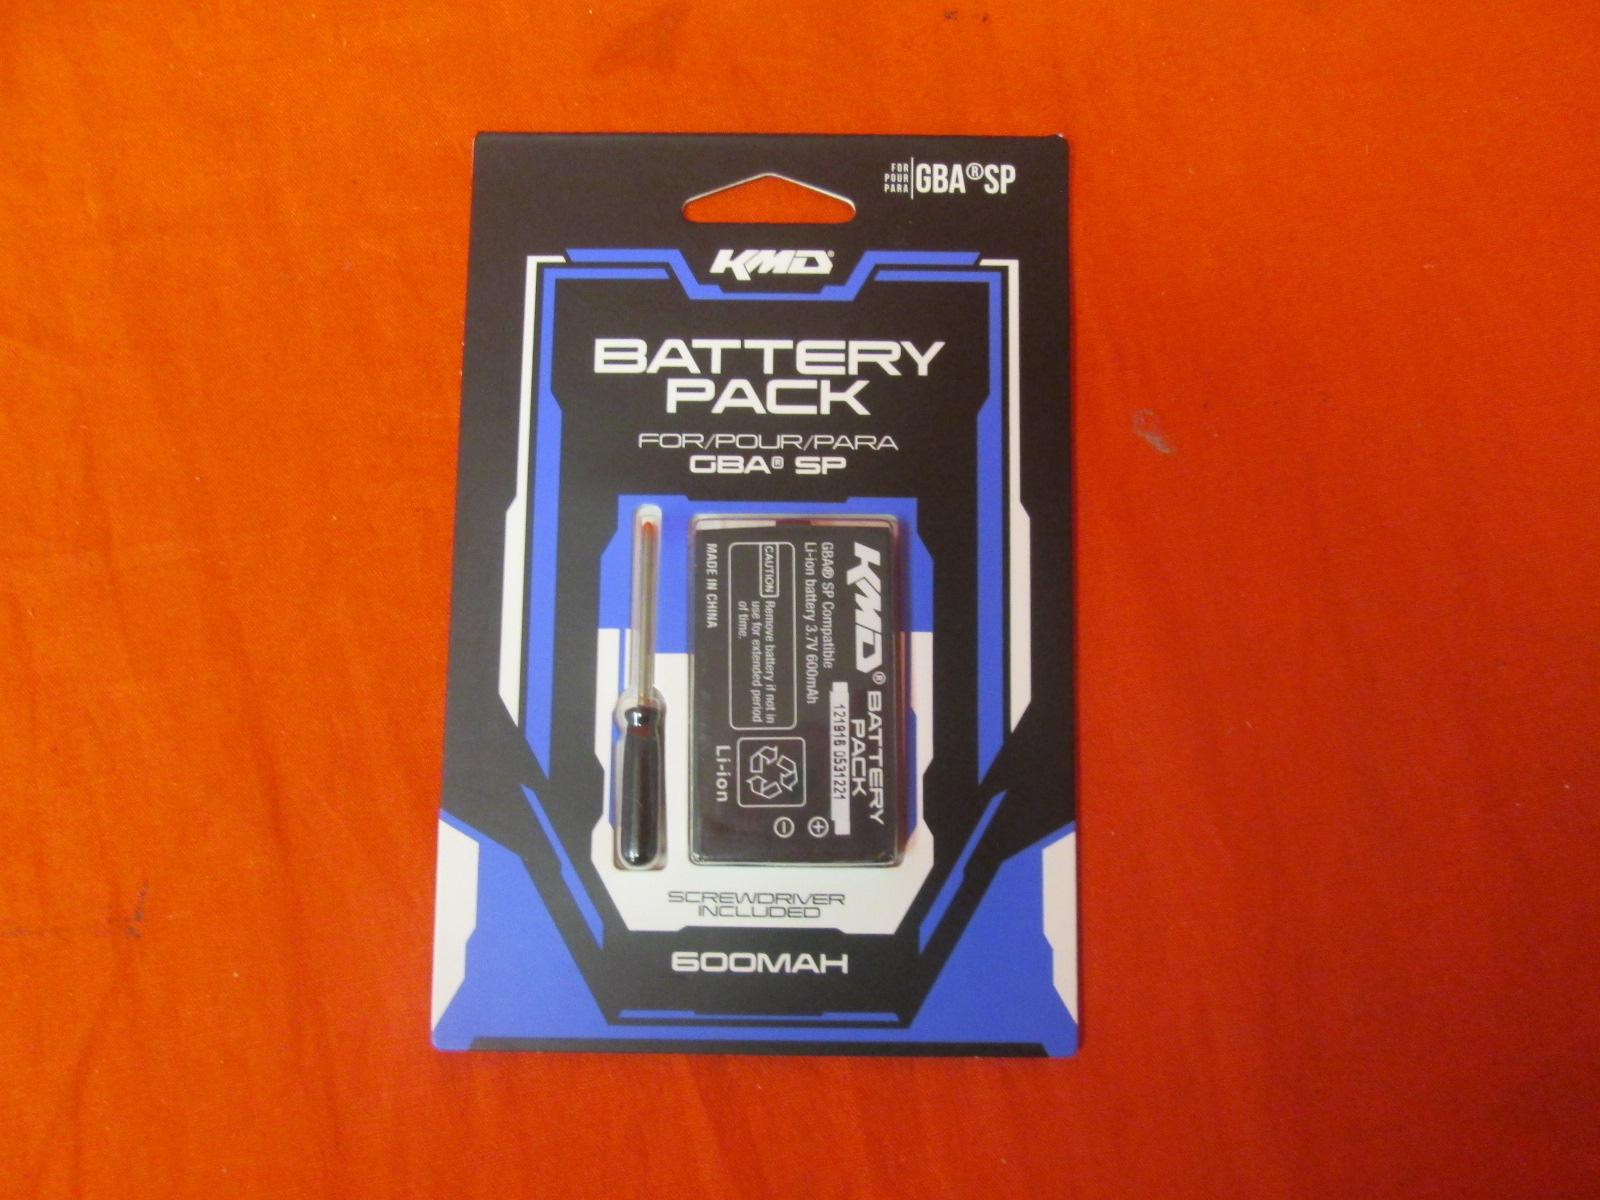 KMD 3000MAH Rechargeable Battery Pack For Nintendo Wii U Internal